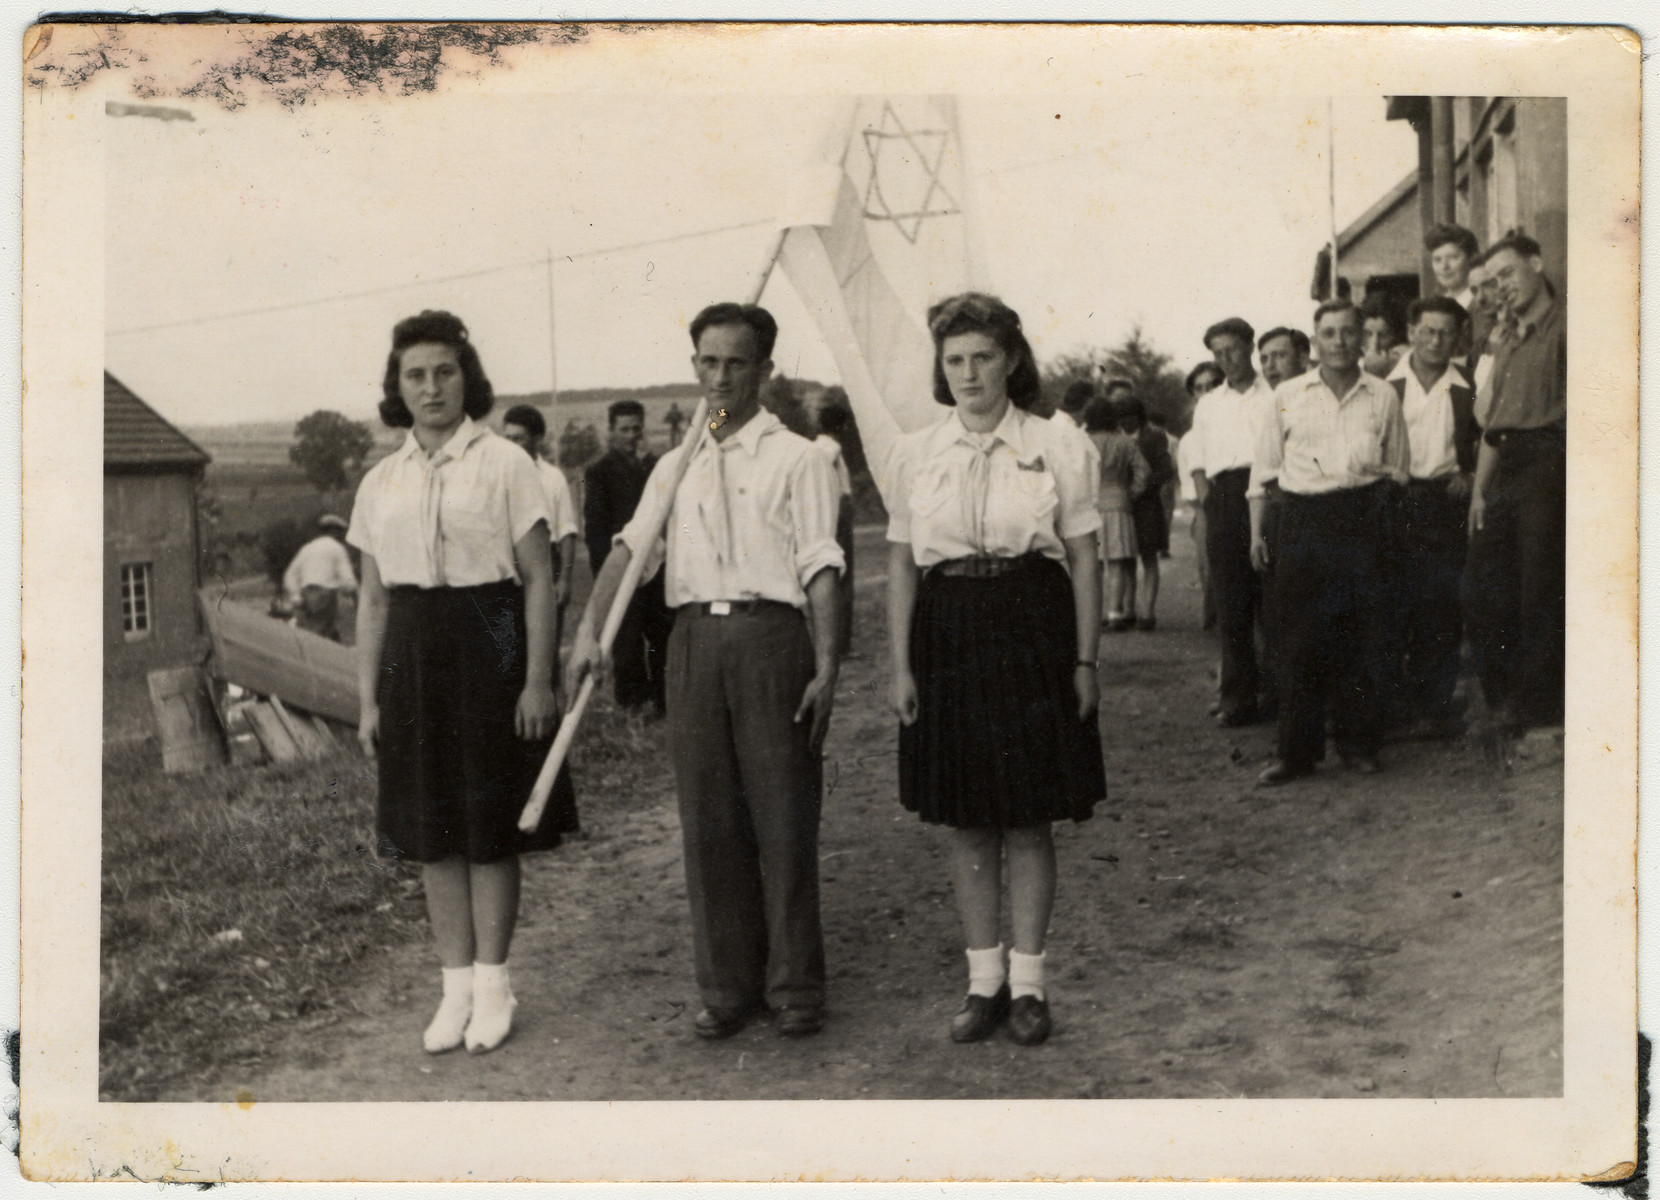 Jewish displaced persons stand at attention with a flag during a Zionist demonstration in Kibbutz LaNegev.  Pictured in the foreground on the right is Sara Wiener.